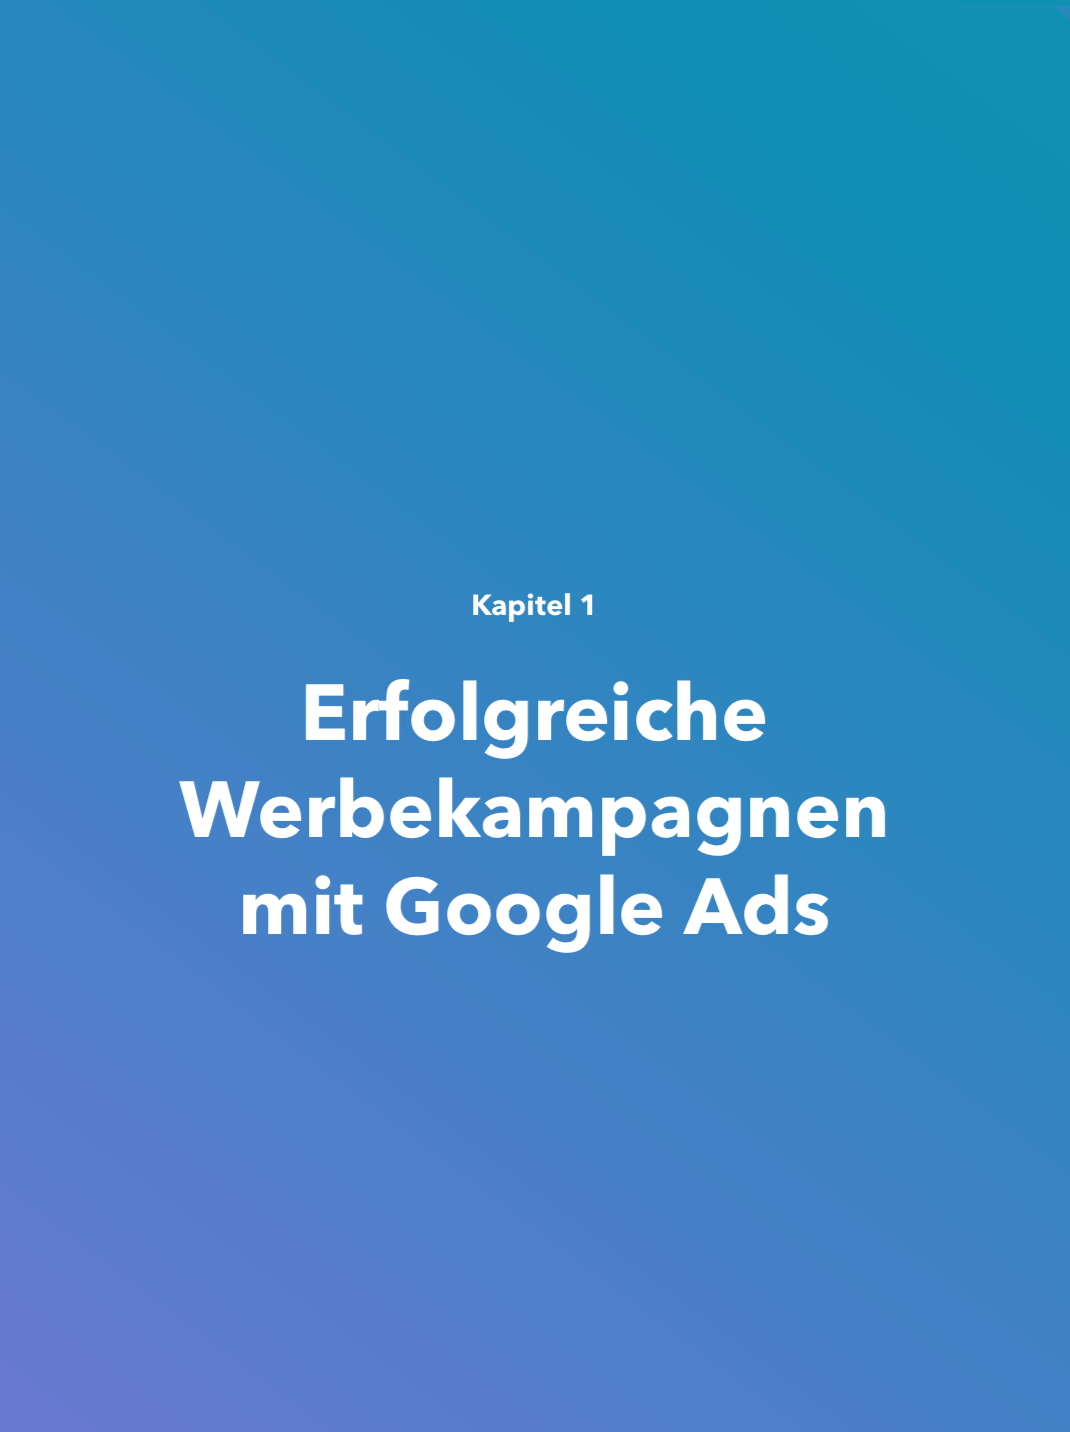 2020 Google Ads Guide Preview 5